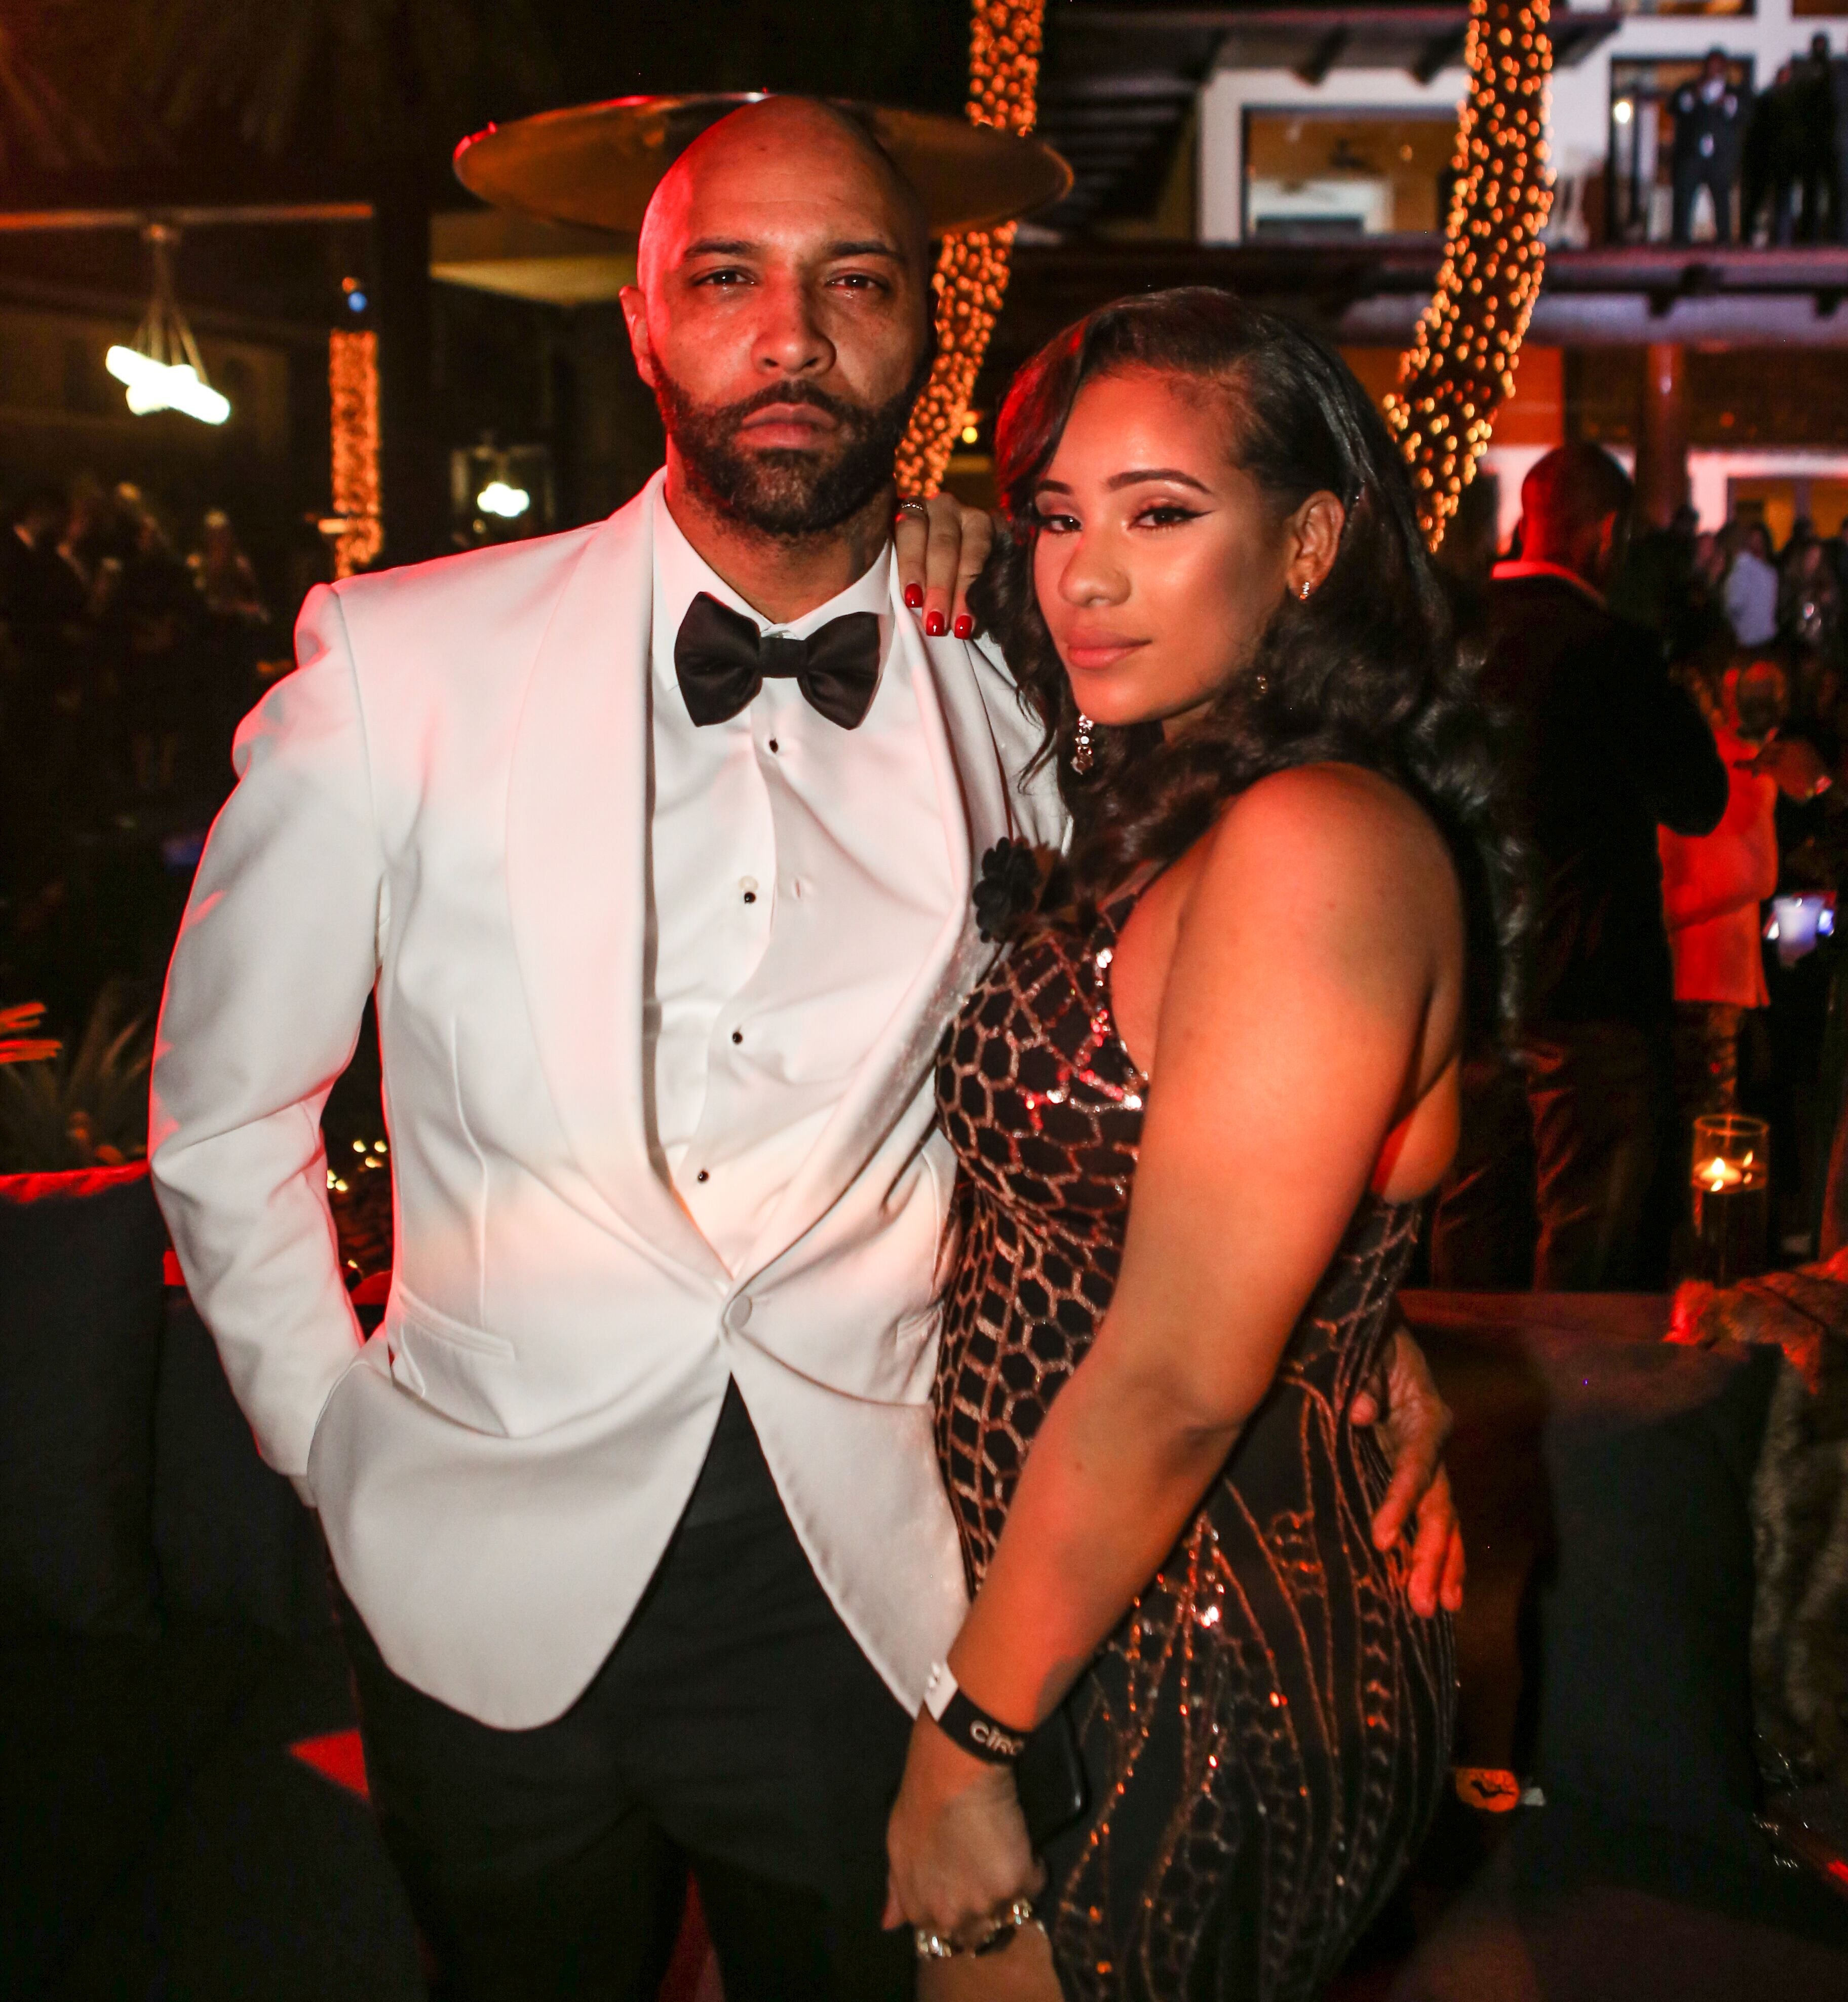 Joe Budden and Cyn Santana attend Sean 'Diddy' Combs Hosts CIROC The New Year 2018 Powered By Deleon Tequila at Star Island on December 31, 2017 in Miami, Florida. | Photo: Getty Images